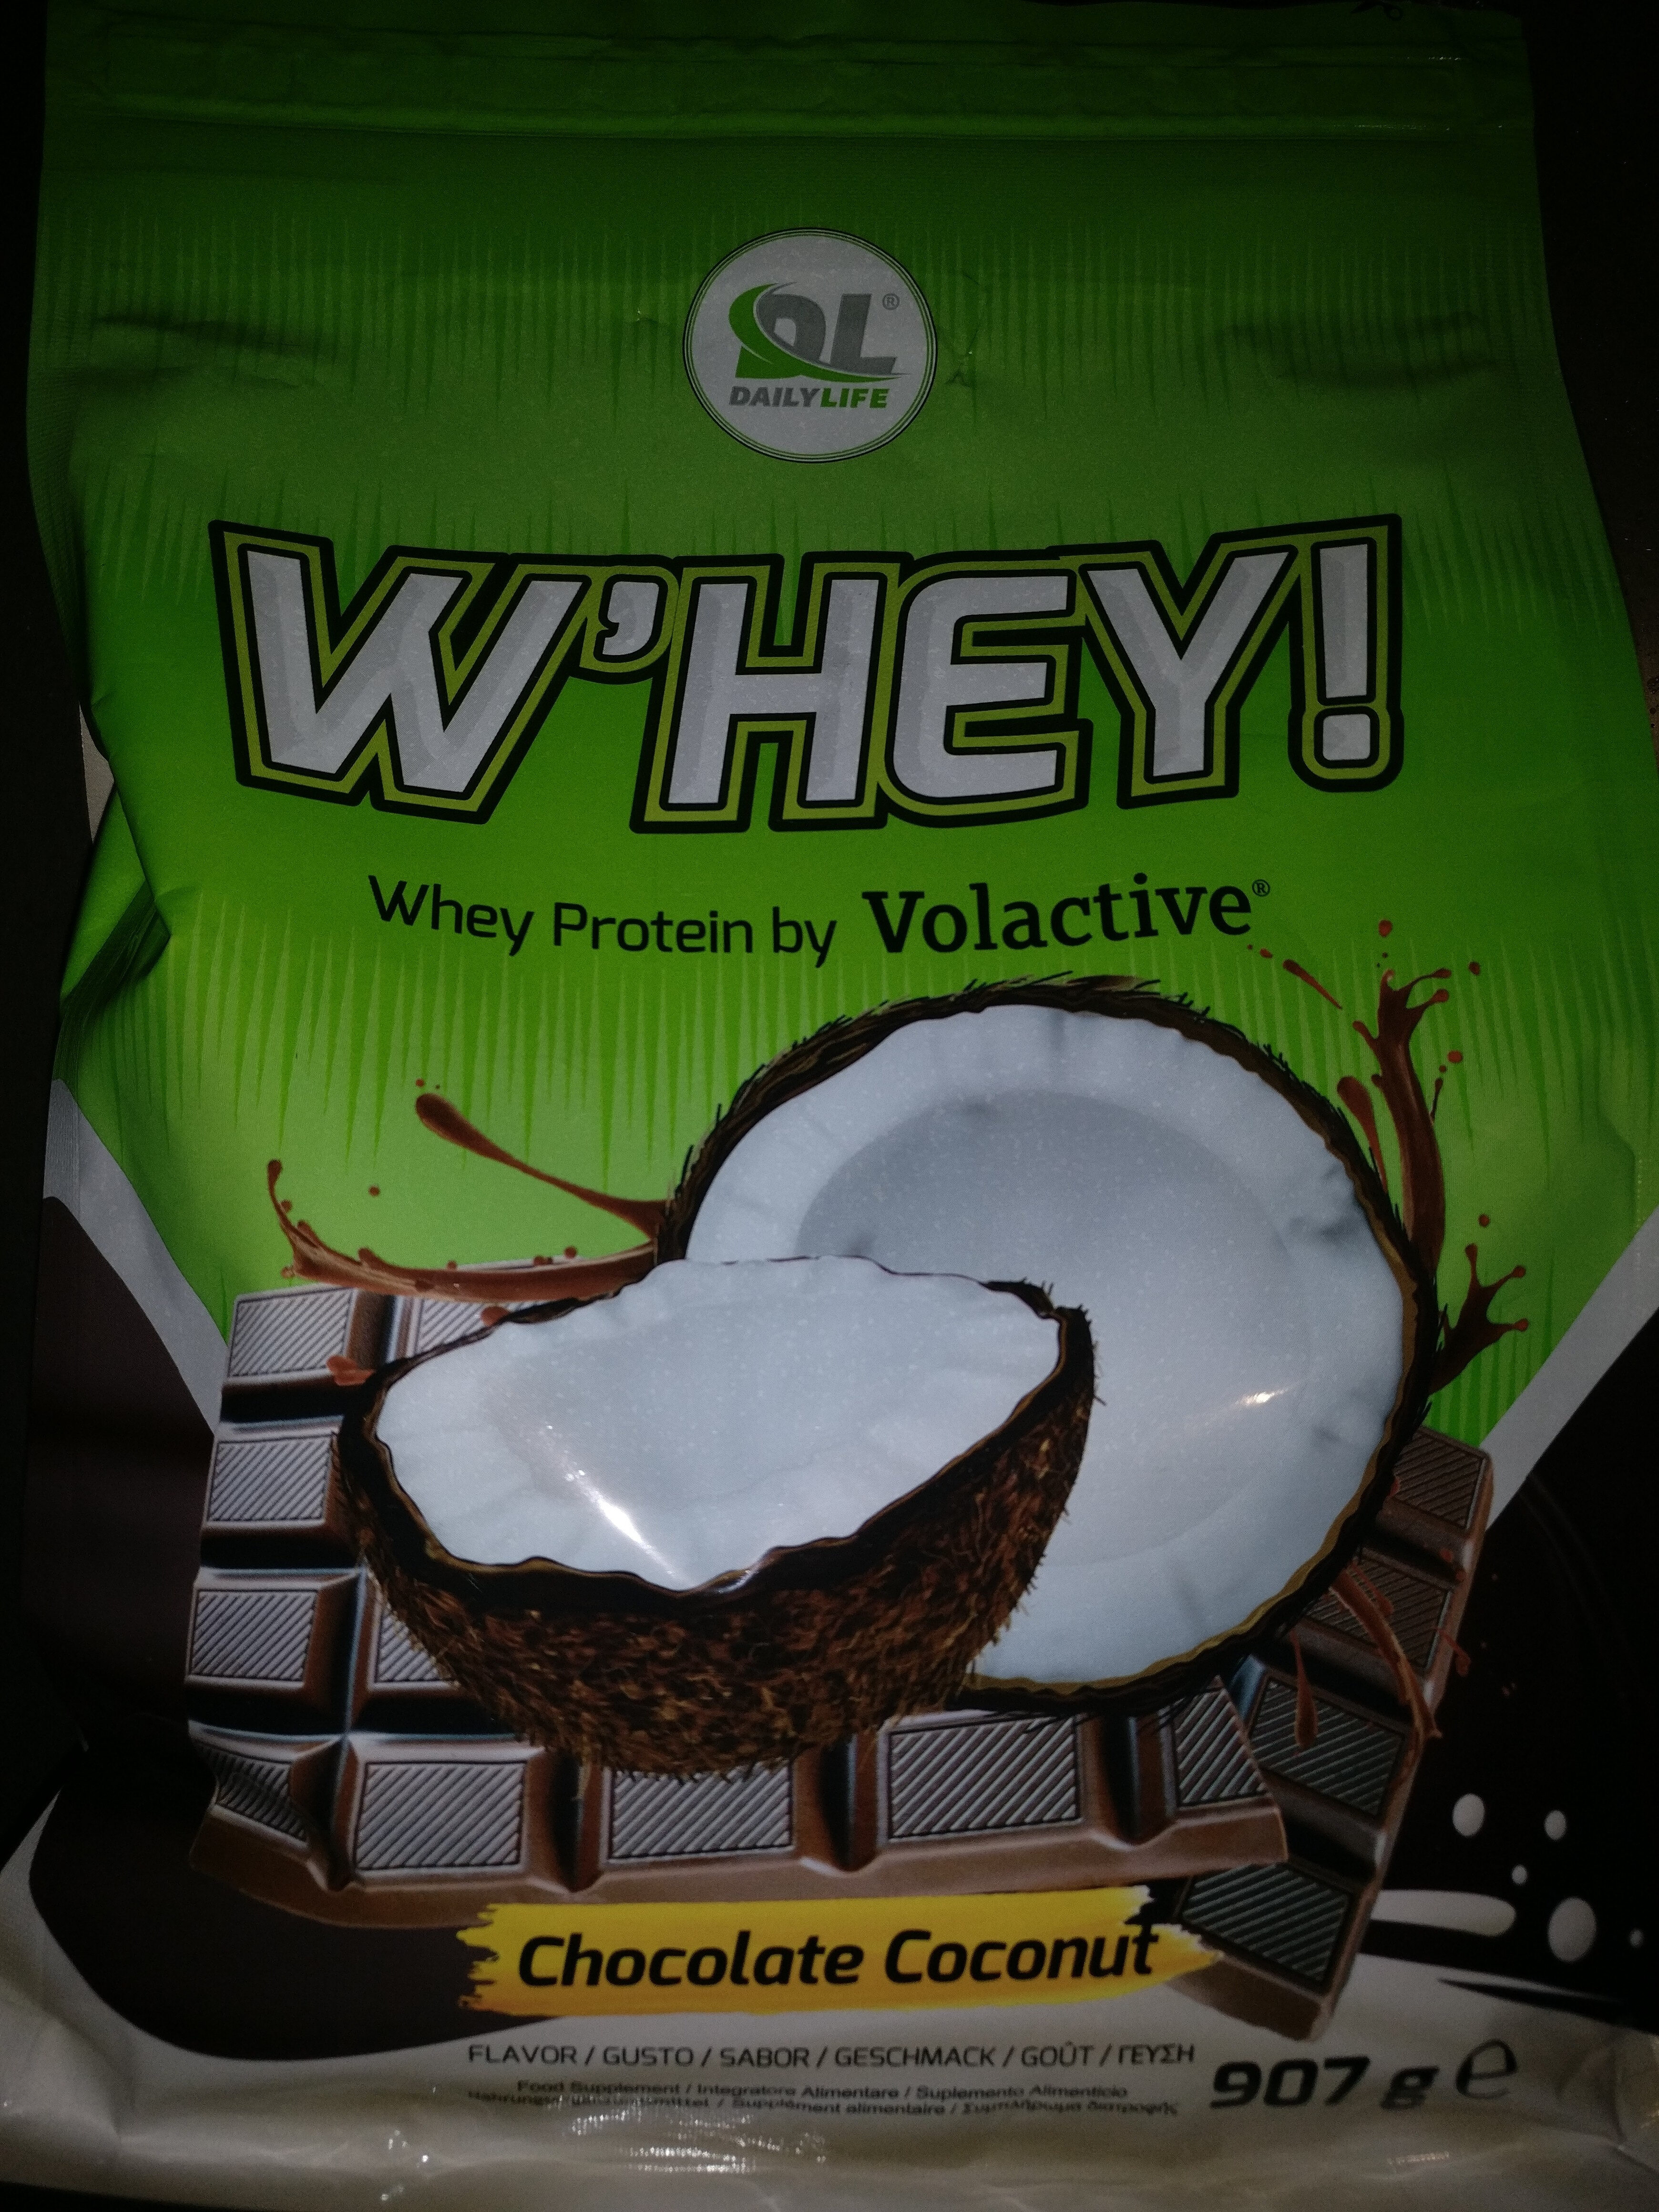 W'hey gusto Chocolate Coconut - Product - it